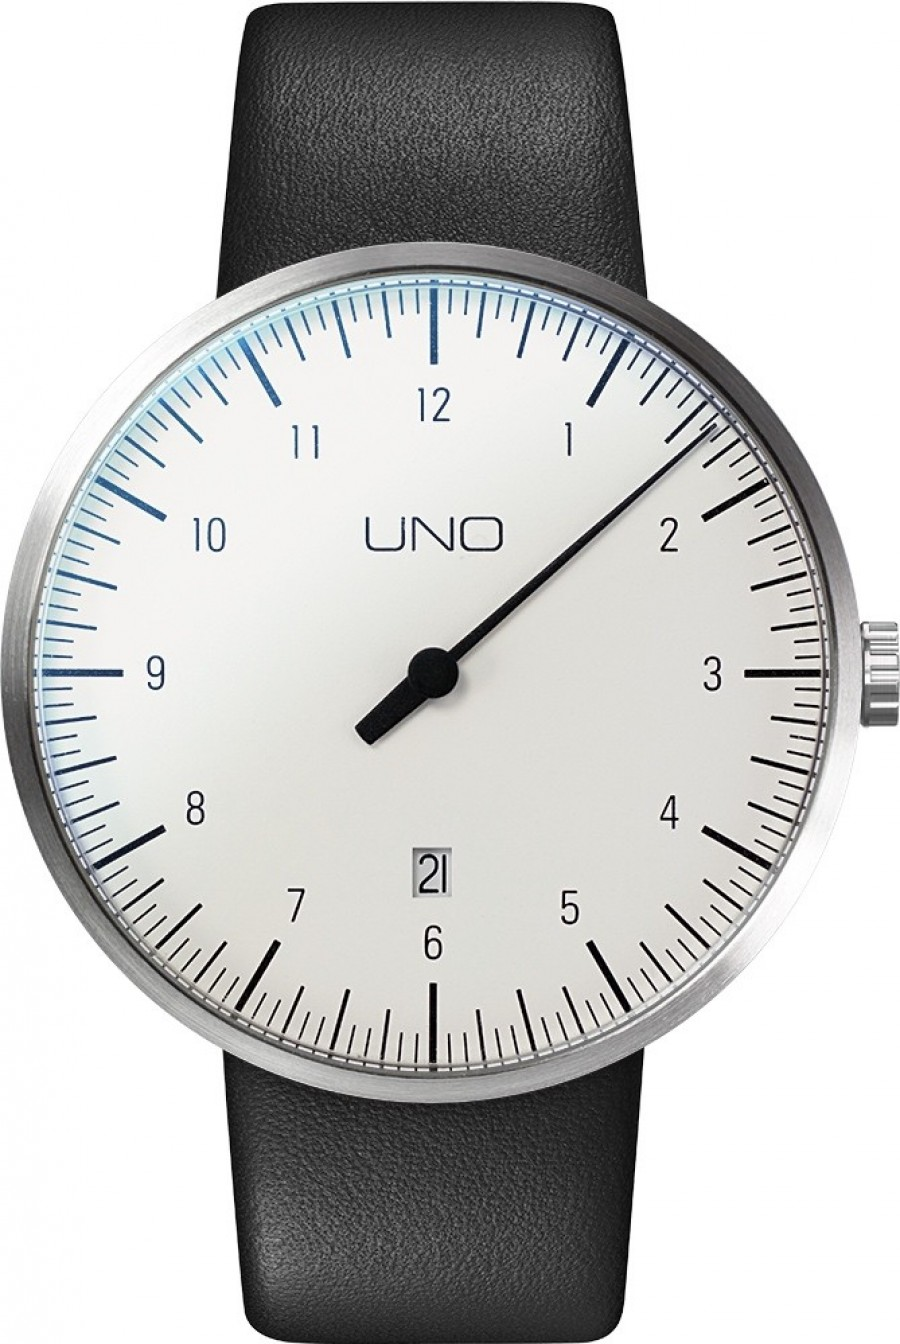 Botta Design uno+ alpin automaat - leer 44mm